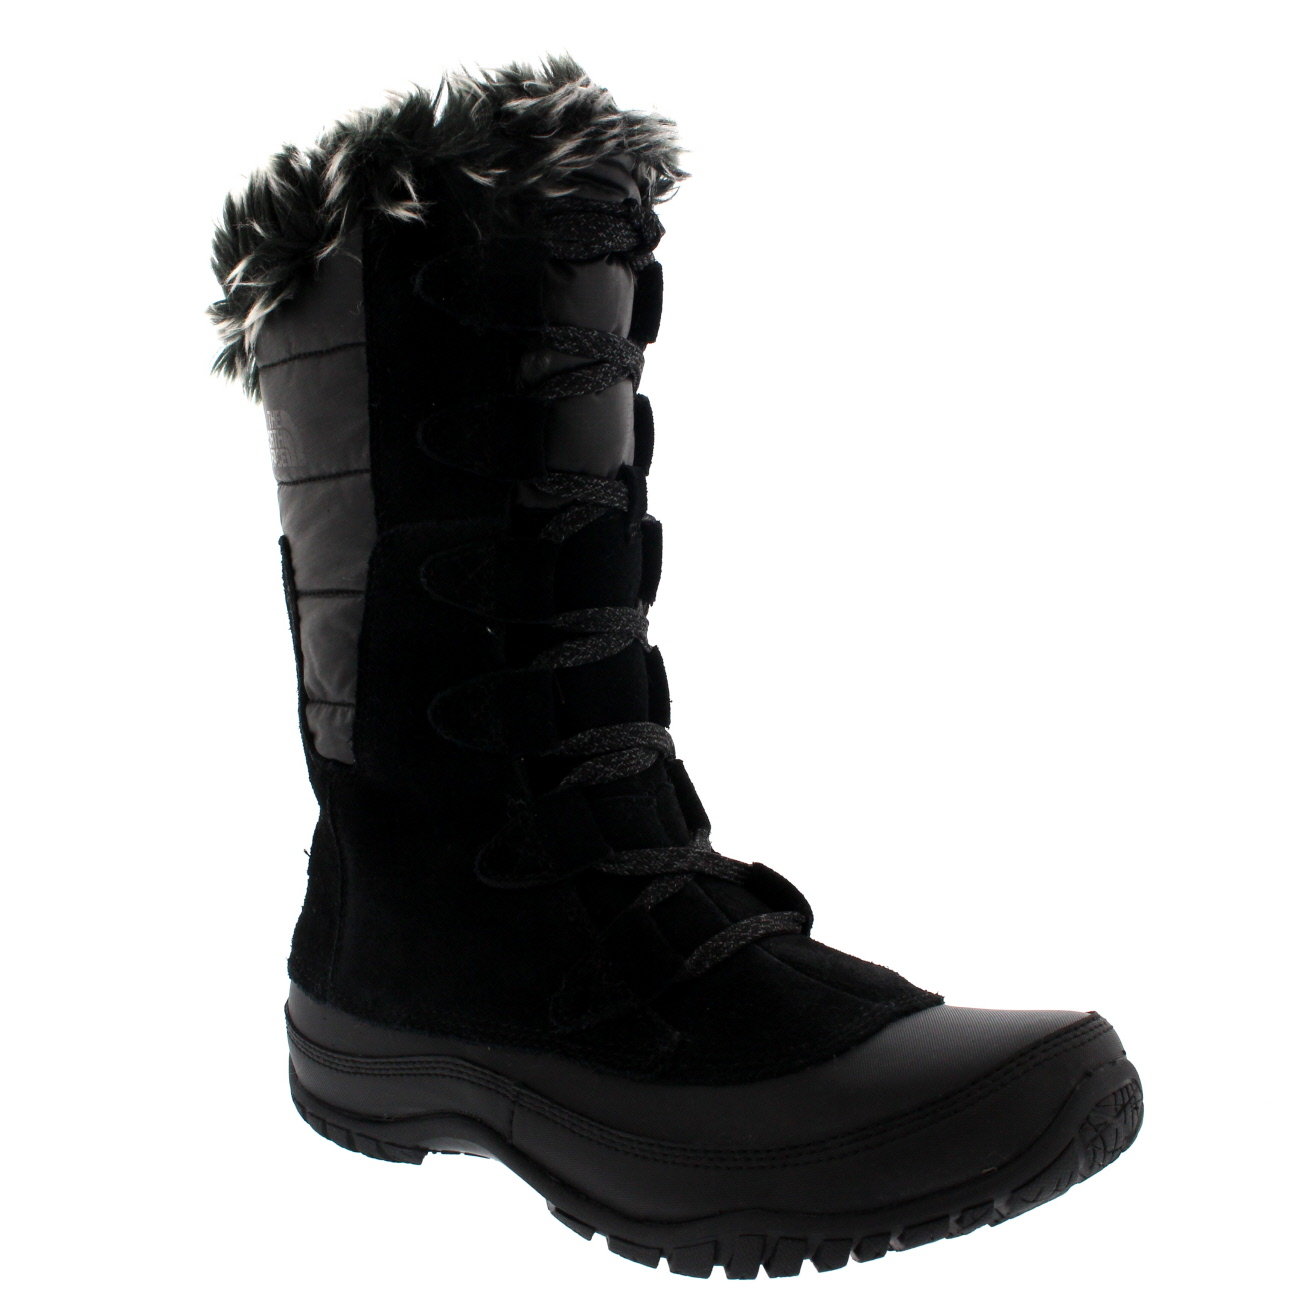 The North Face Nuptse Purna Fur Boots